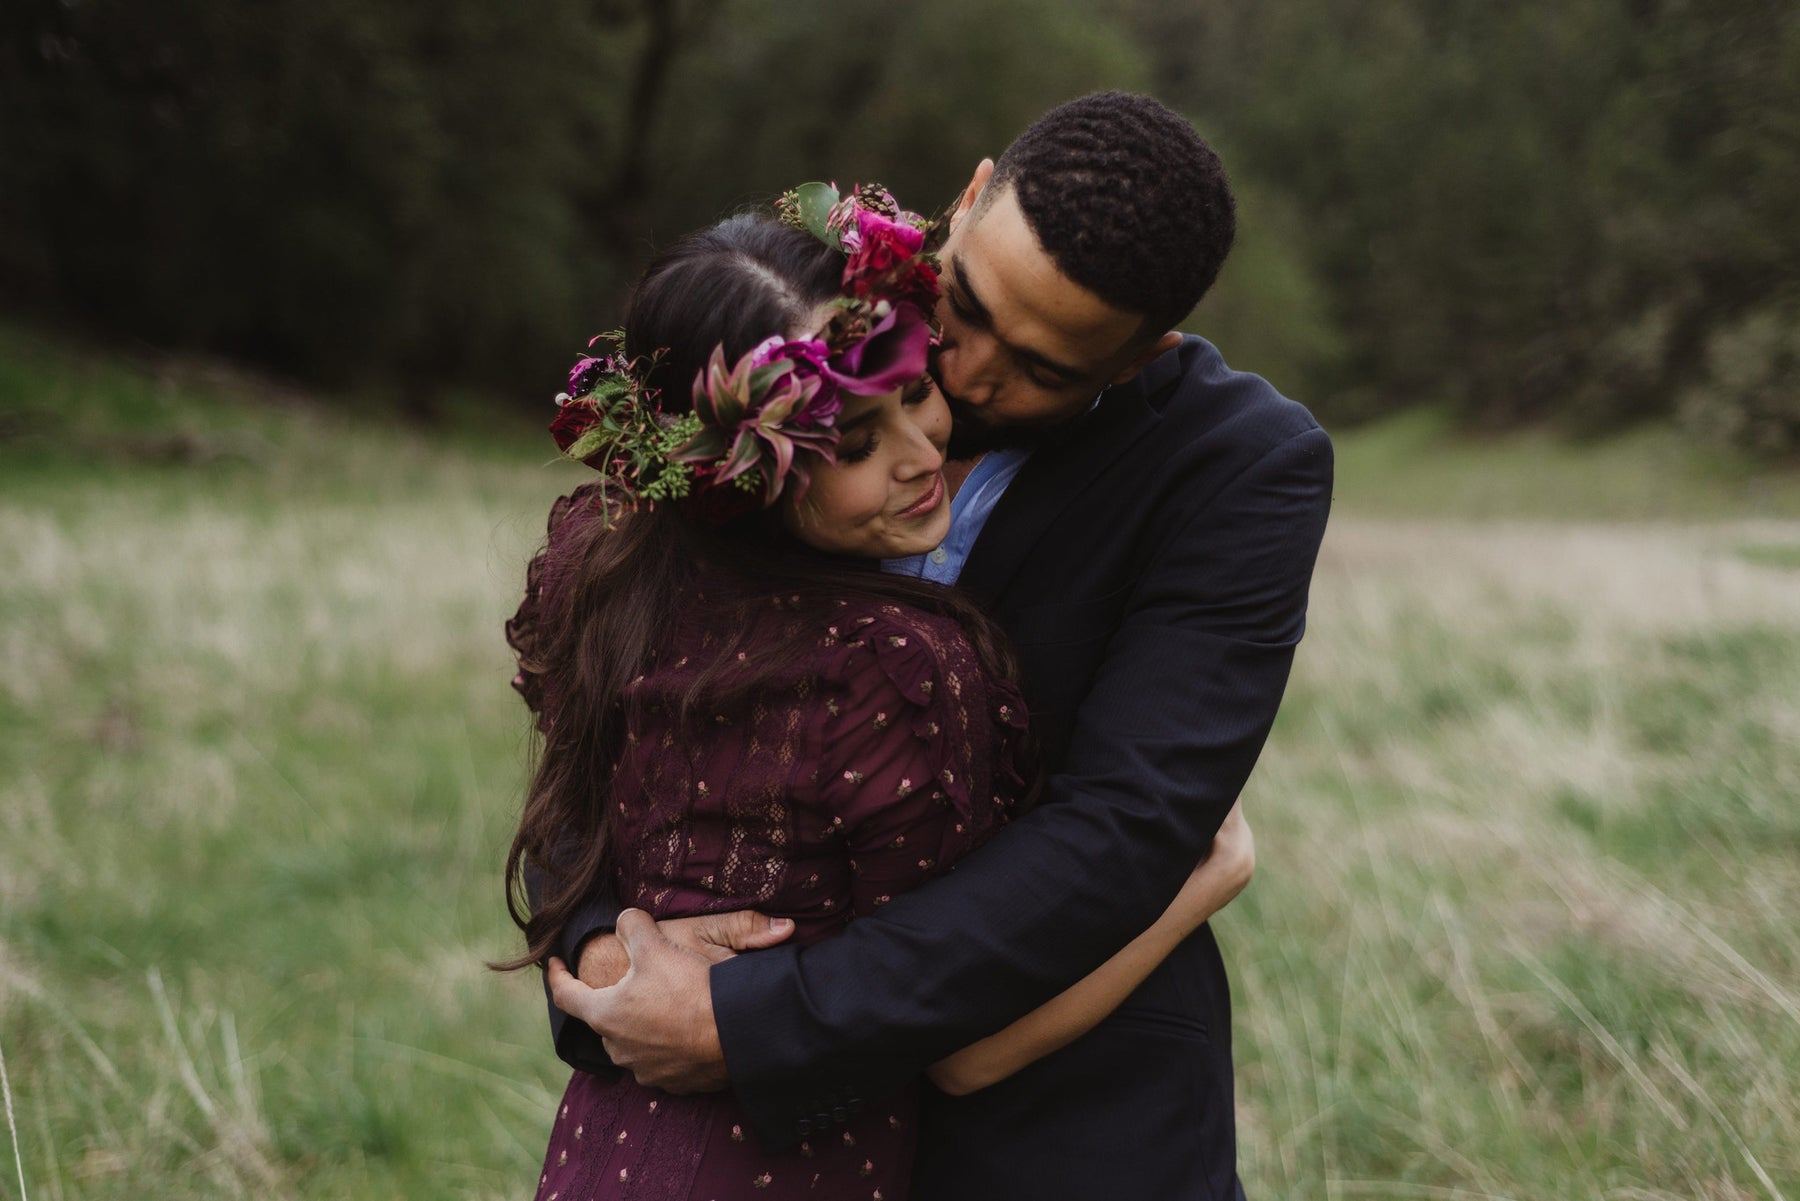 A couple entwined in an embrace, with a flower garland hair piece